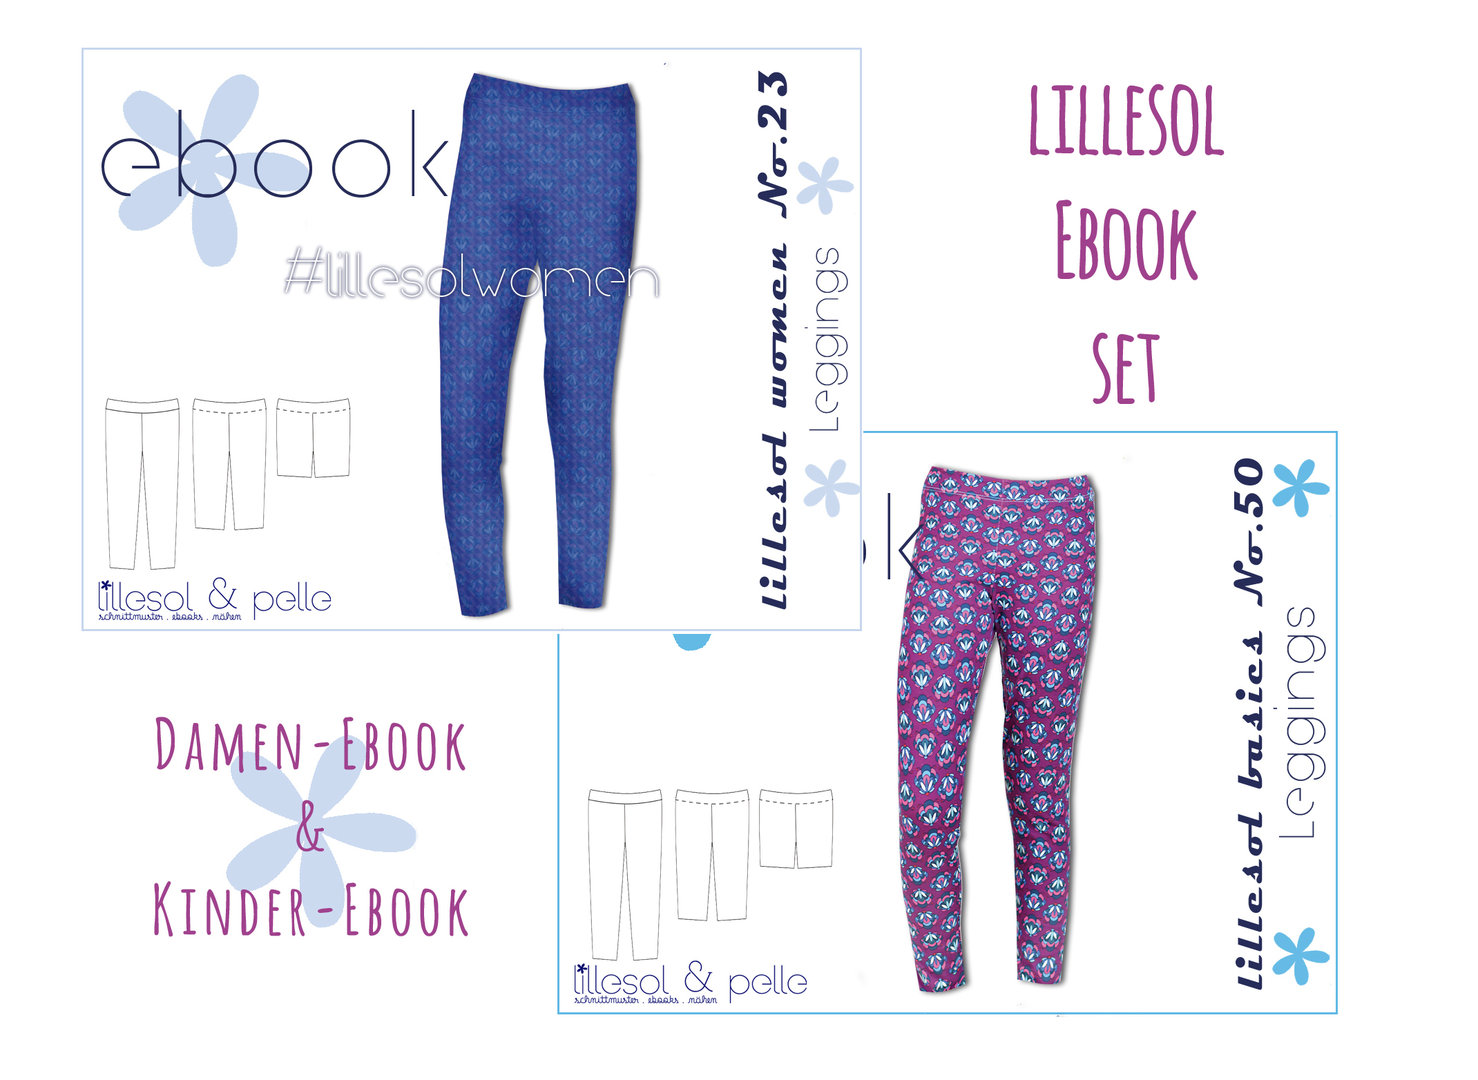 lillesol ebook set basics No.50 und women No.23